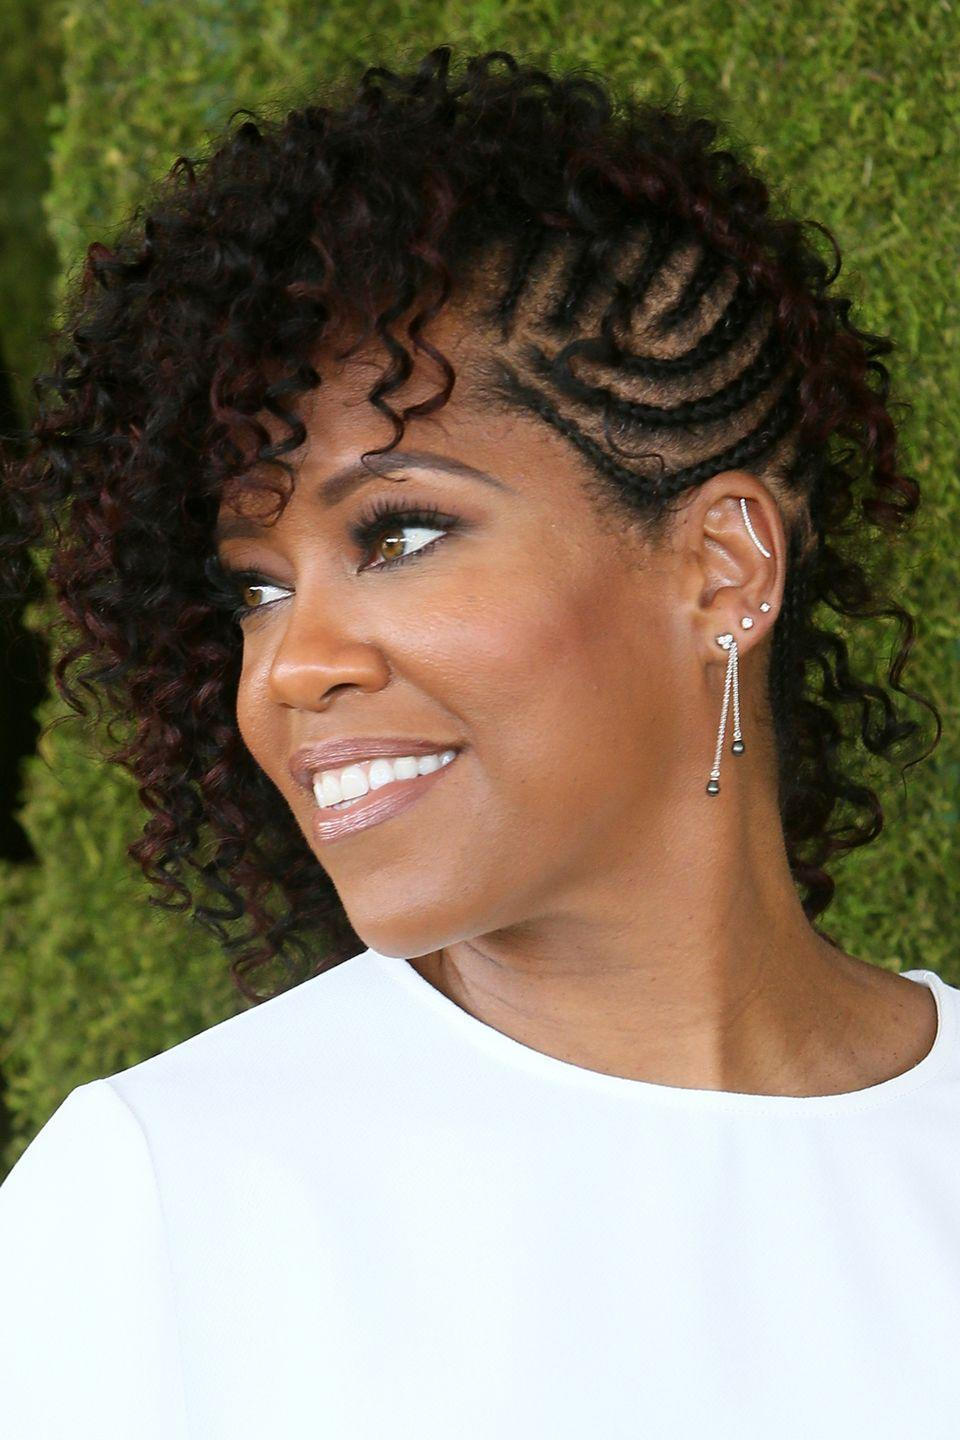 """<p>Pair your curls with intricate cornrows. Actress <strong>Regina King</strong> mixes it up by tightly braiding one side of her hair and leaving the rest to cascade in <a href=""""https://www.goodhousekeeping.com/beauty/hair/tips/g201/celebrity-hairstyles-curly/"""" rel=""""nofollow noopener"""" target=""""_blank"""" data-ylk=""""slk:beautiful ringlets"""" class=""""link rapid-noclick-resp"""">beautiful ringlets</a>.</p>"""